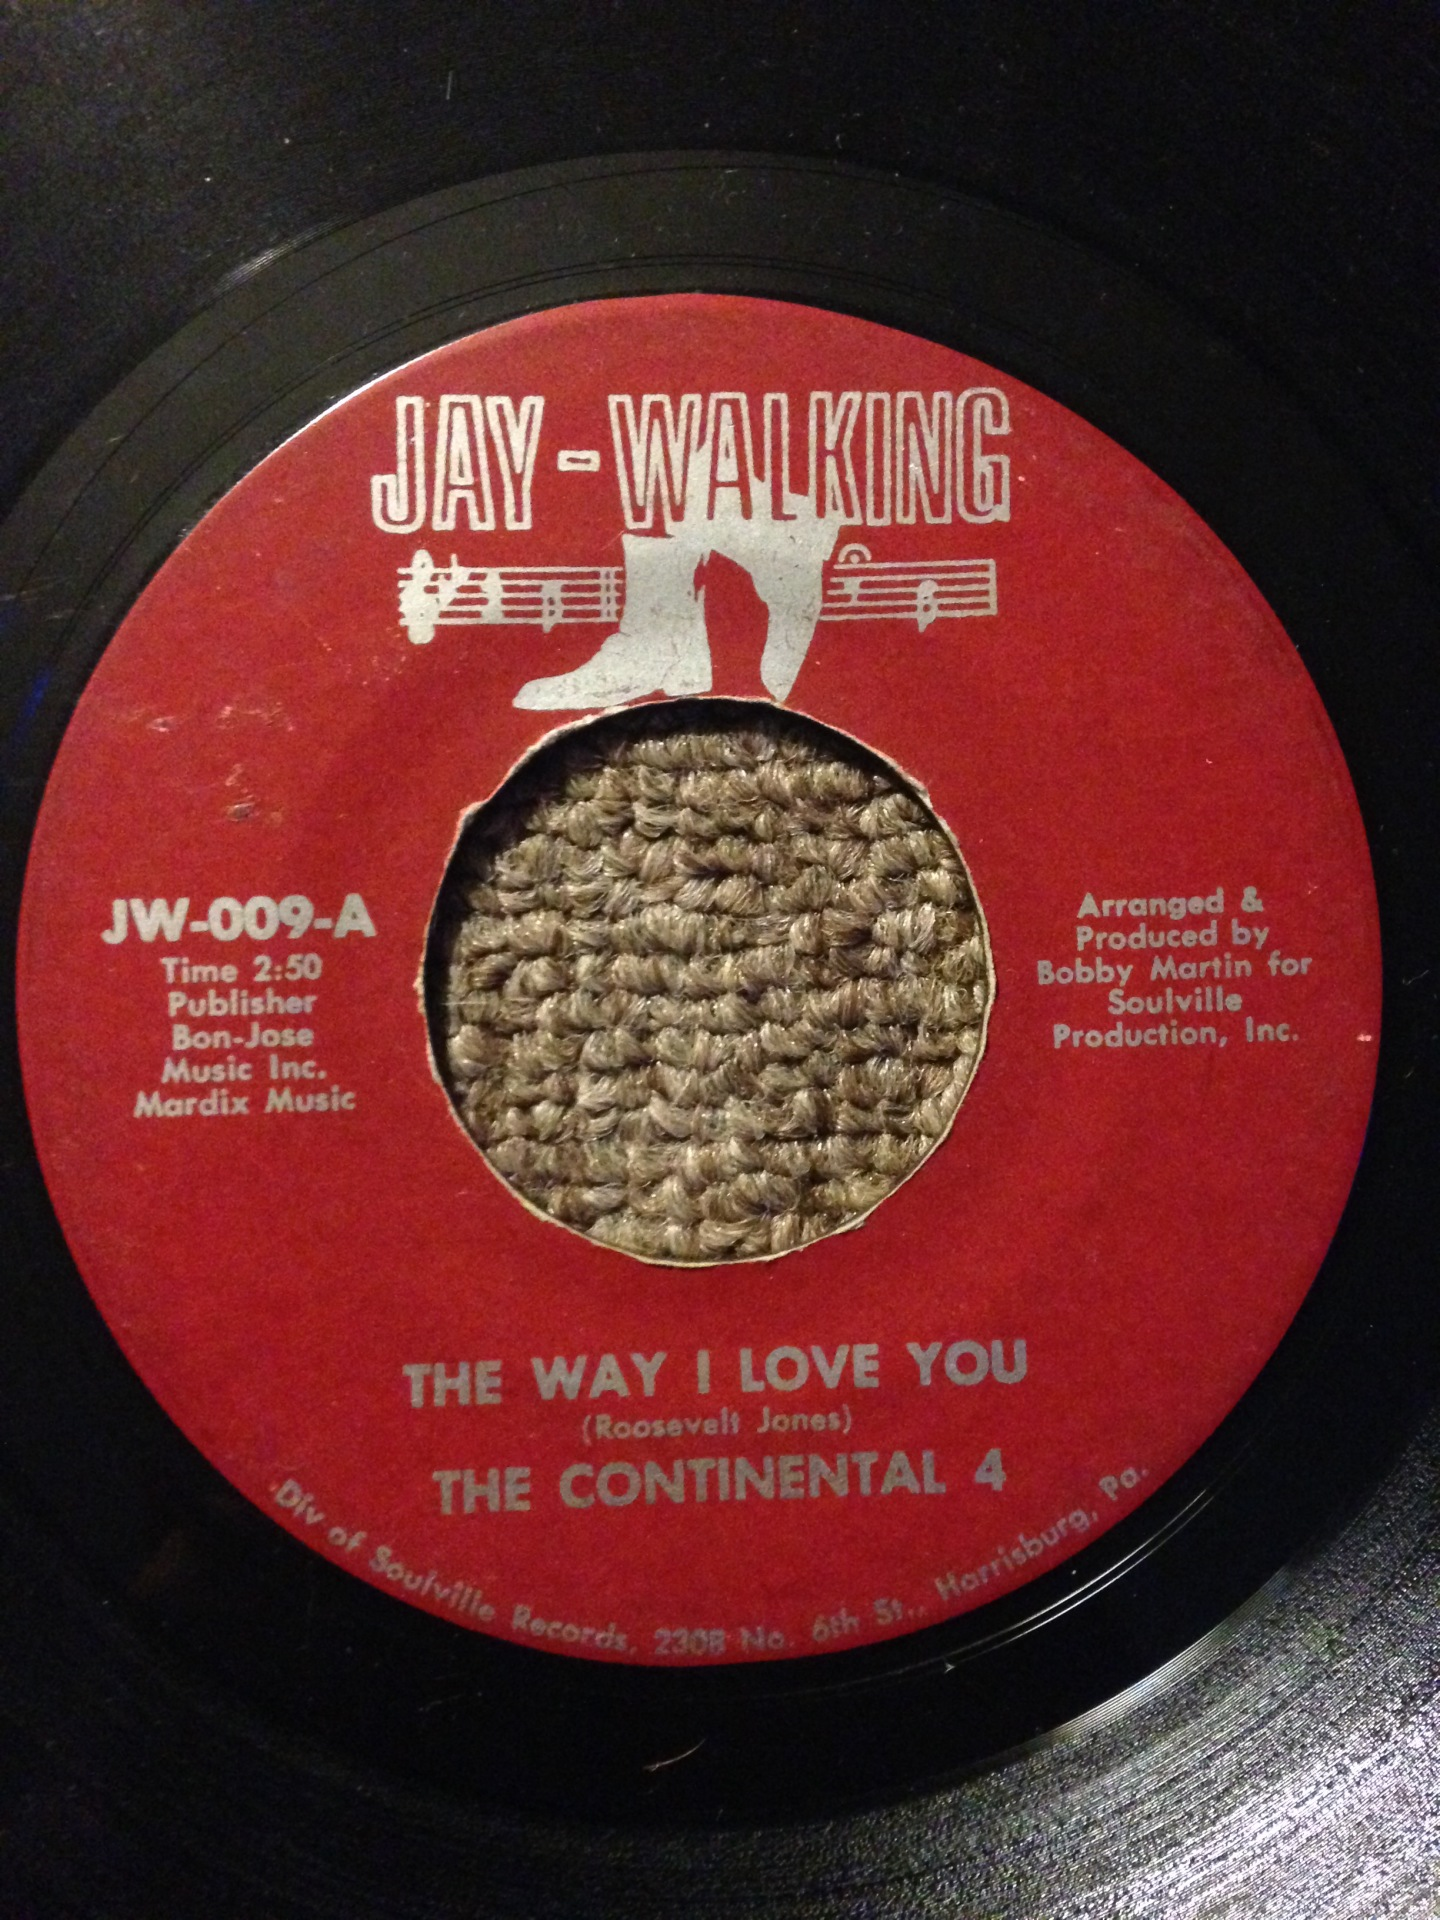 The Continental 4 - The Way I Love You